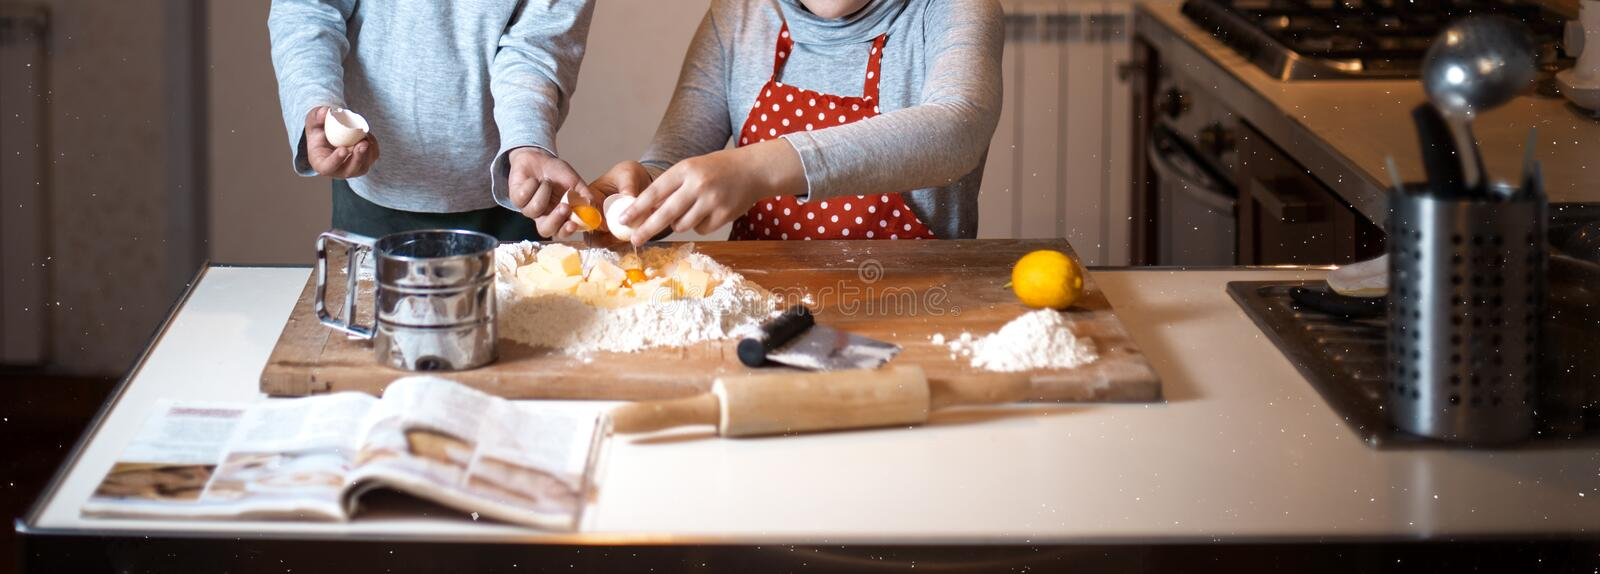 Cooking with fun at home. Banner with Two young chefs have fun at home preparing a cake or donut with eggs and flour stock images